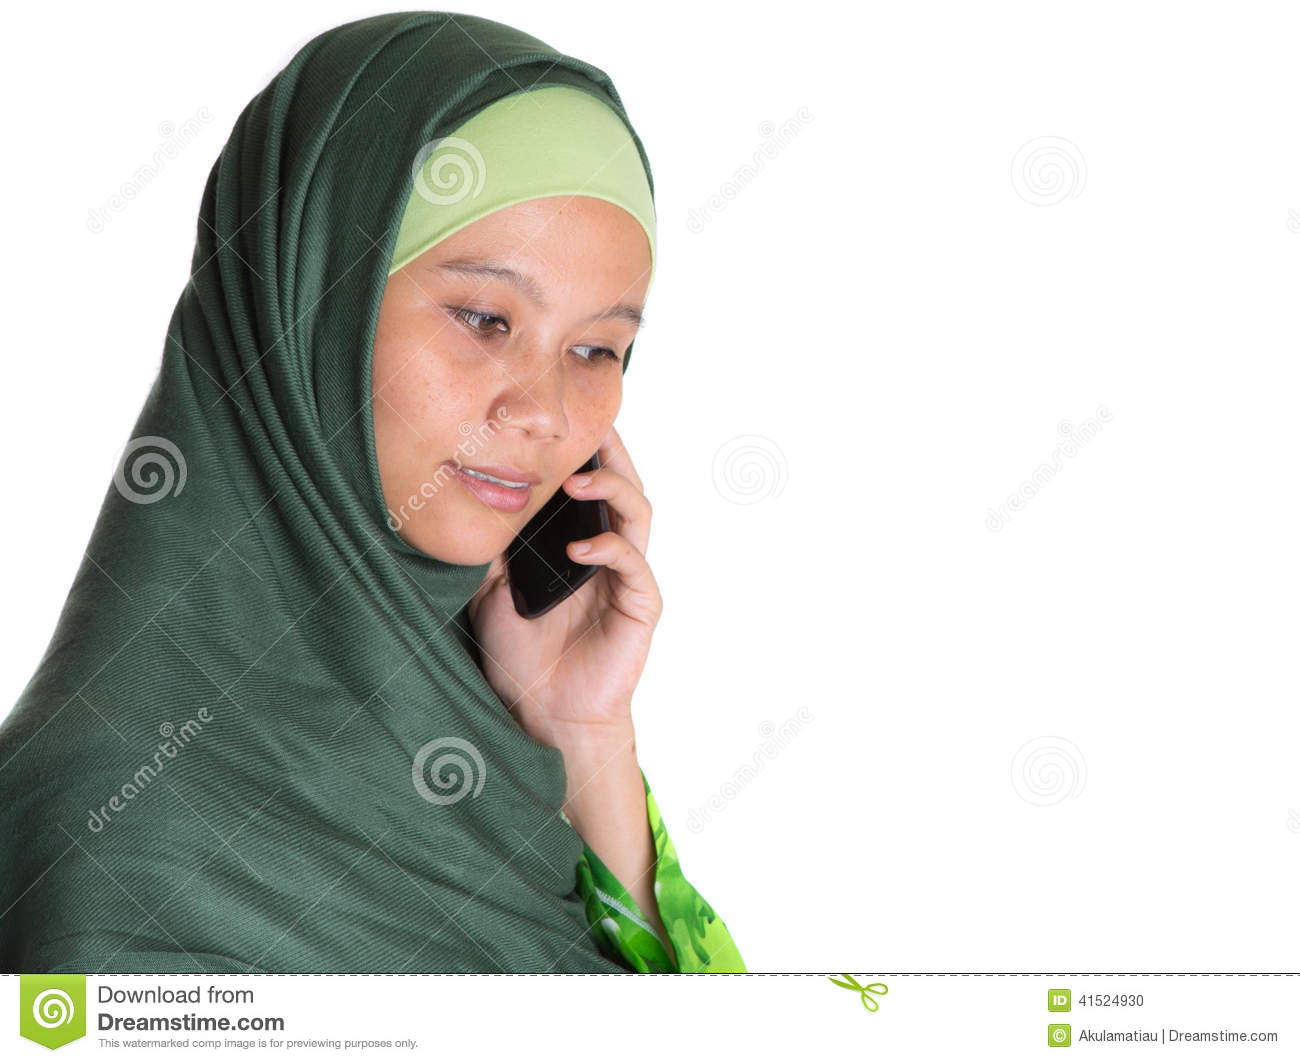 industry muslim girl personals Meet thousands of pakistani, bengali, arab, indian, sunni, or shia singles in a safe and secure environment free sign up and get connecting with muslim dating.